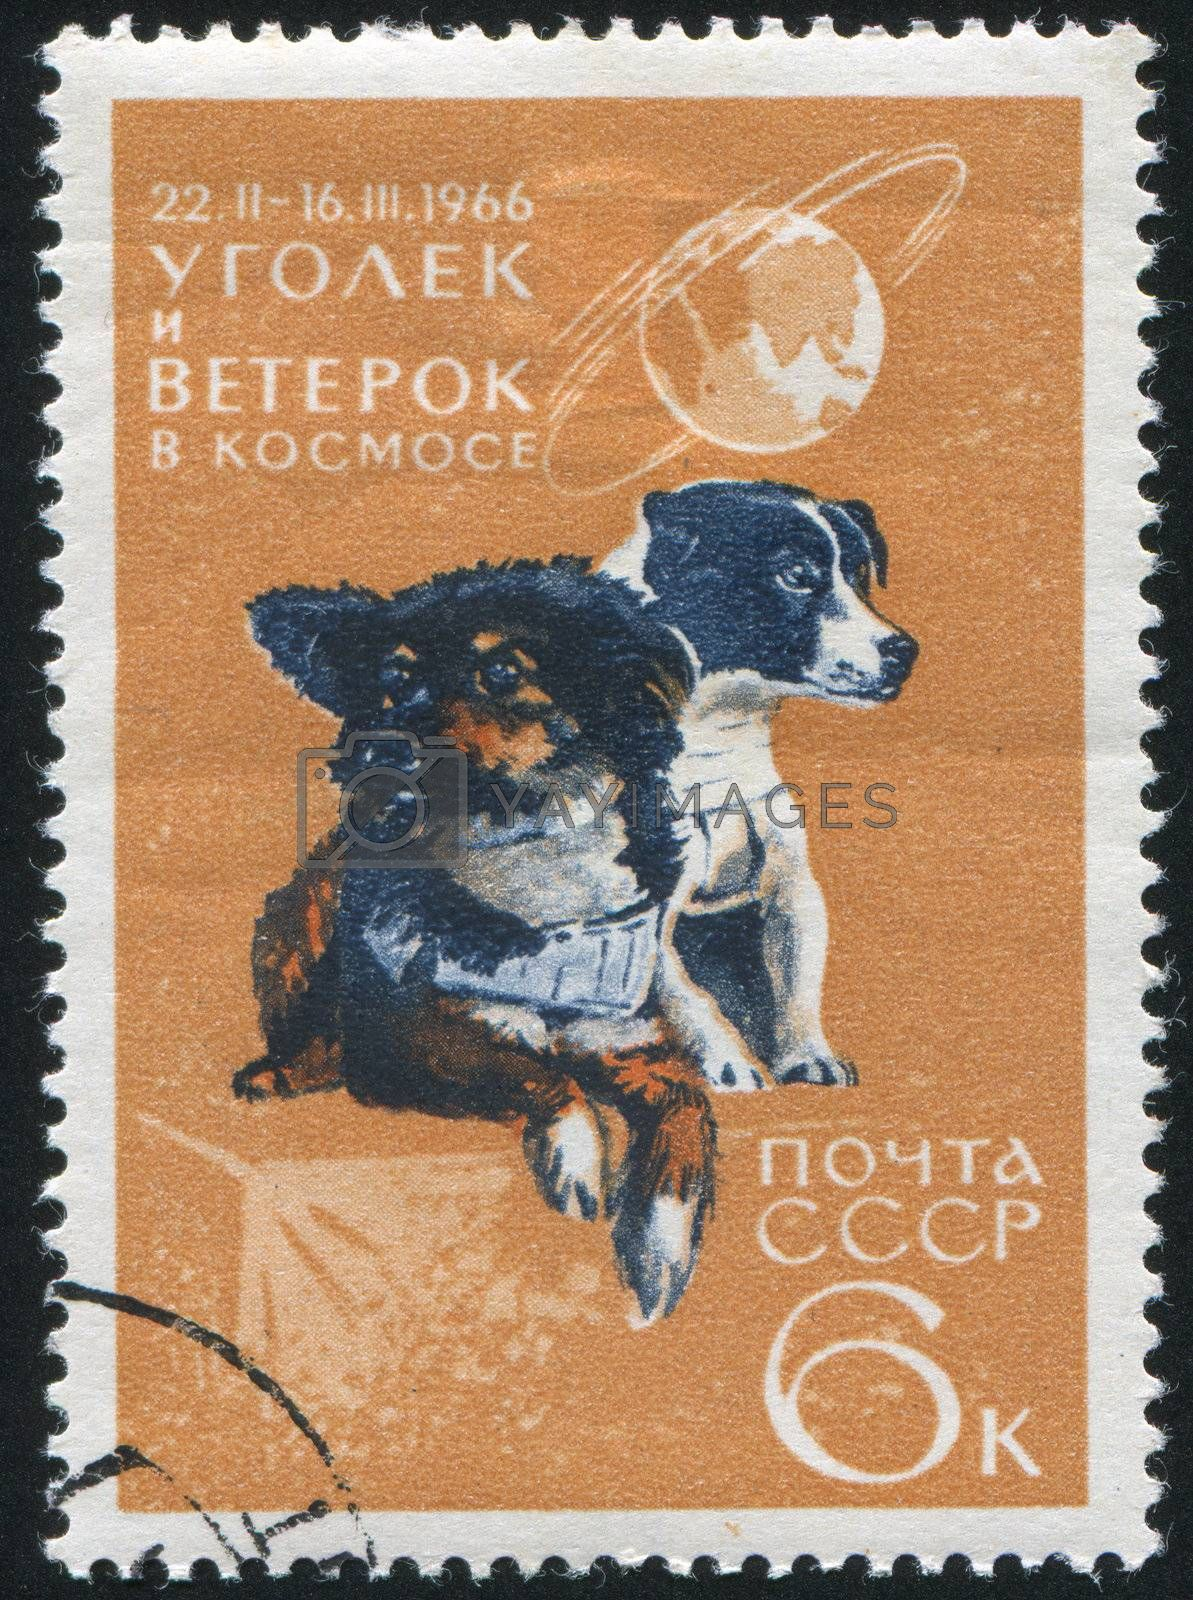 RUSSIA - CIRCA 1966: stamp printed by Russia, shows Dogs Ugolek and Veterok after Space Flight, circa 1966